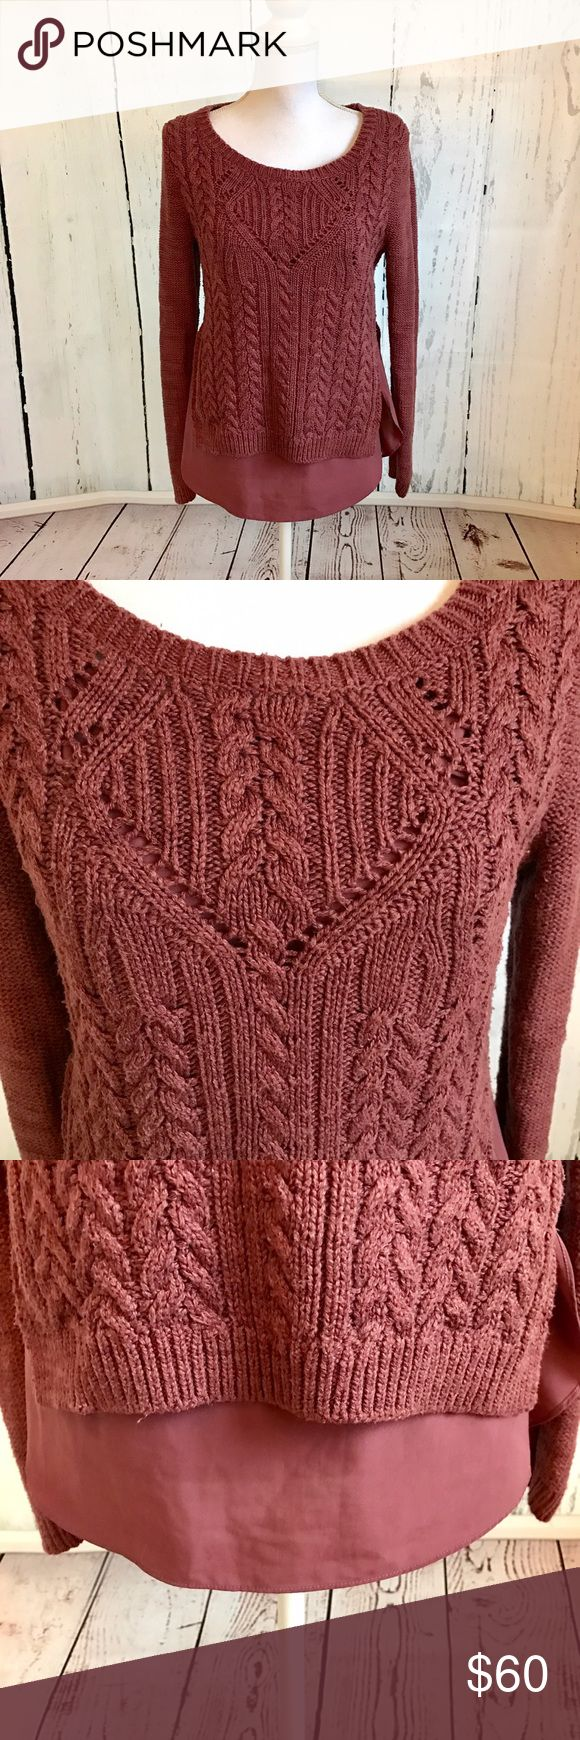 Anthropologie Moth Sweater Anthropologie Moth Sweater with skirted bottom. In good condition with minor piling under arms (see photos). Very warm and soft material. Slits up the side. 🚫Trades ✅Open to reasonable offers Anthropologie Sweaters